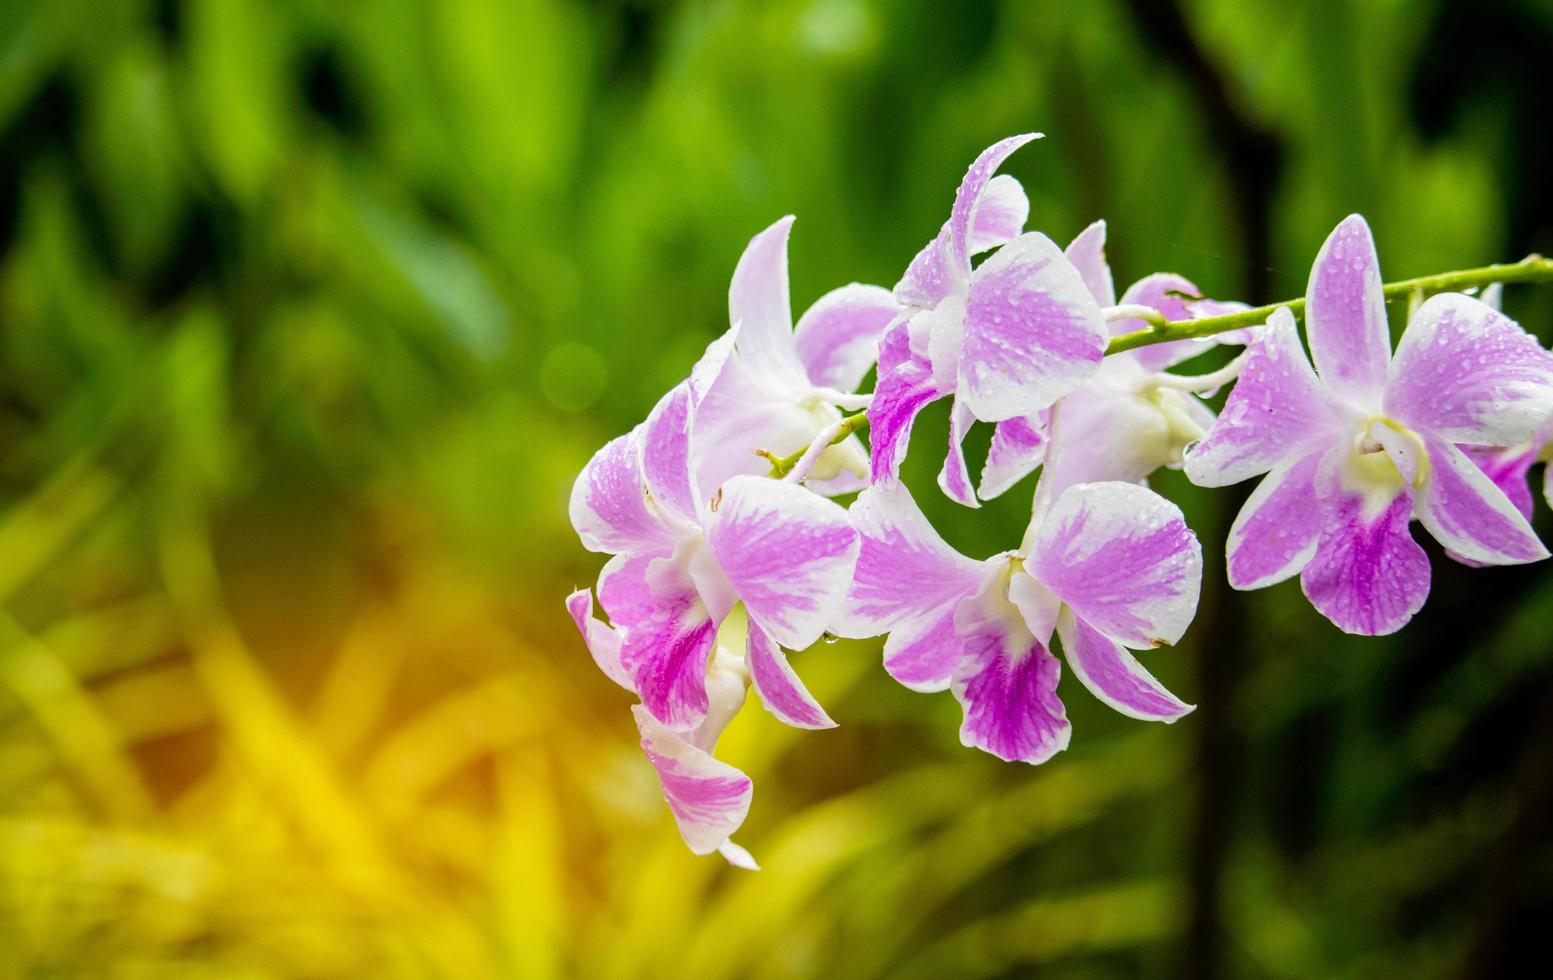 Orchids blooming on a green natural background photo